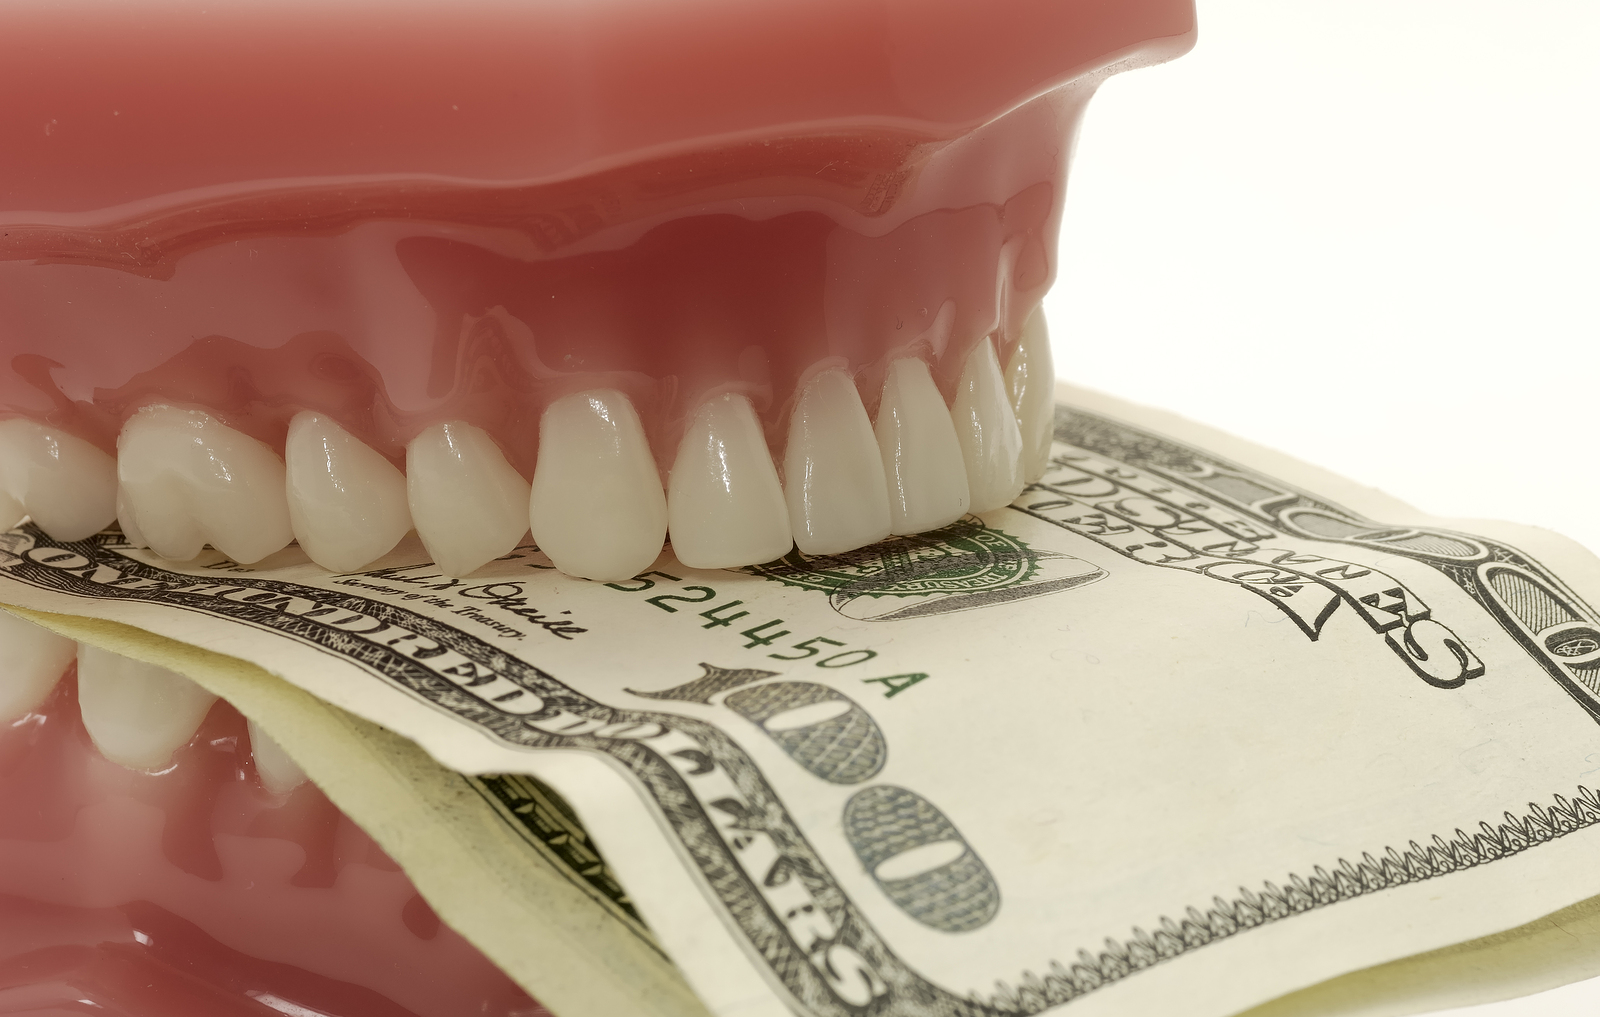 cosmetic-dentistry-cost.jpg